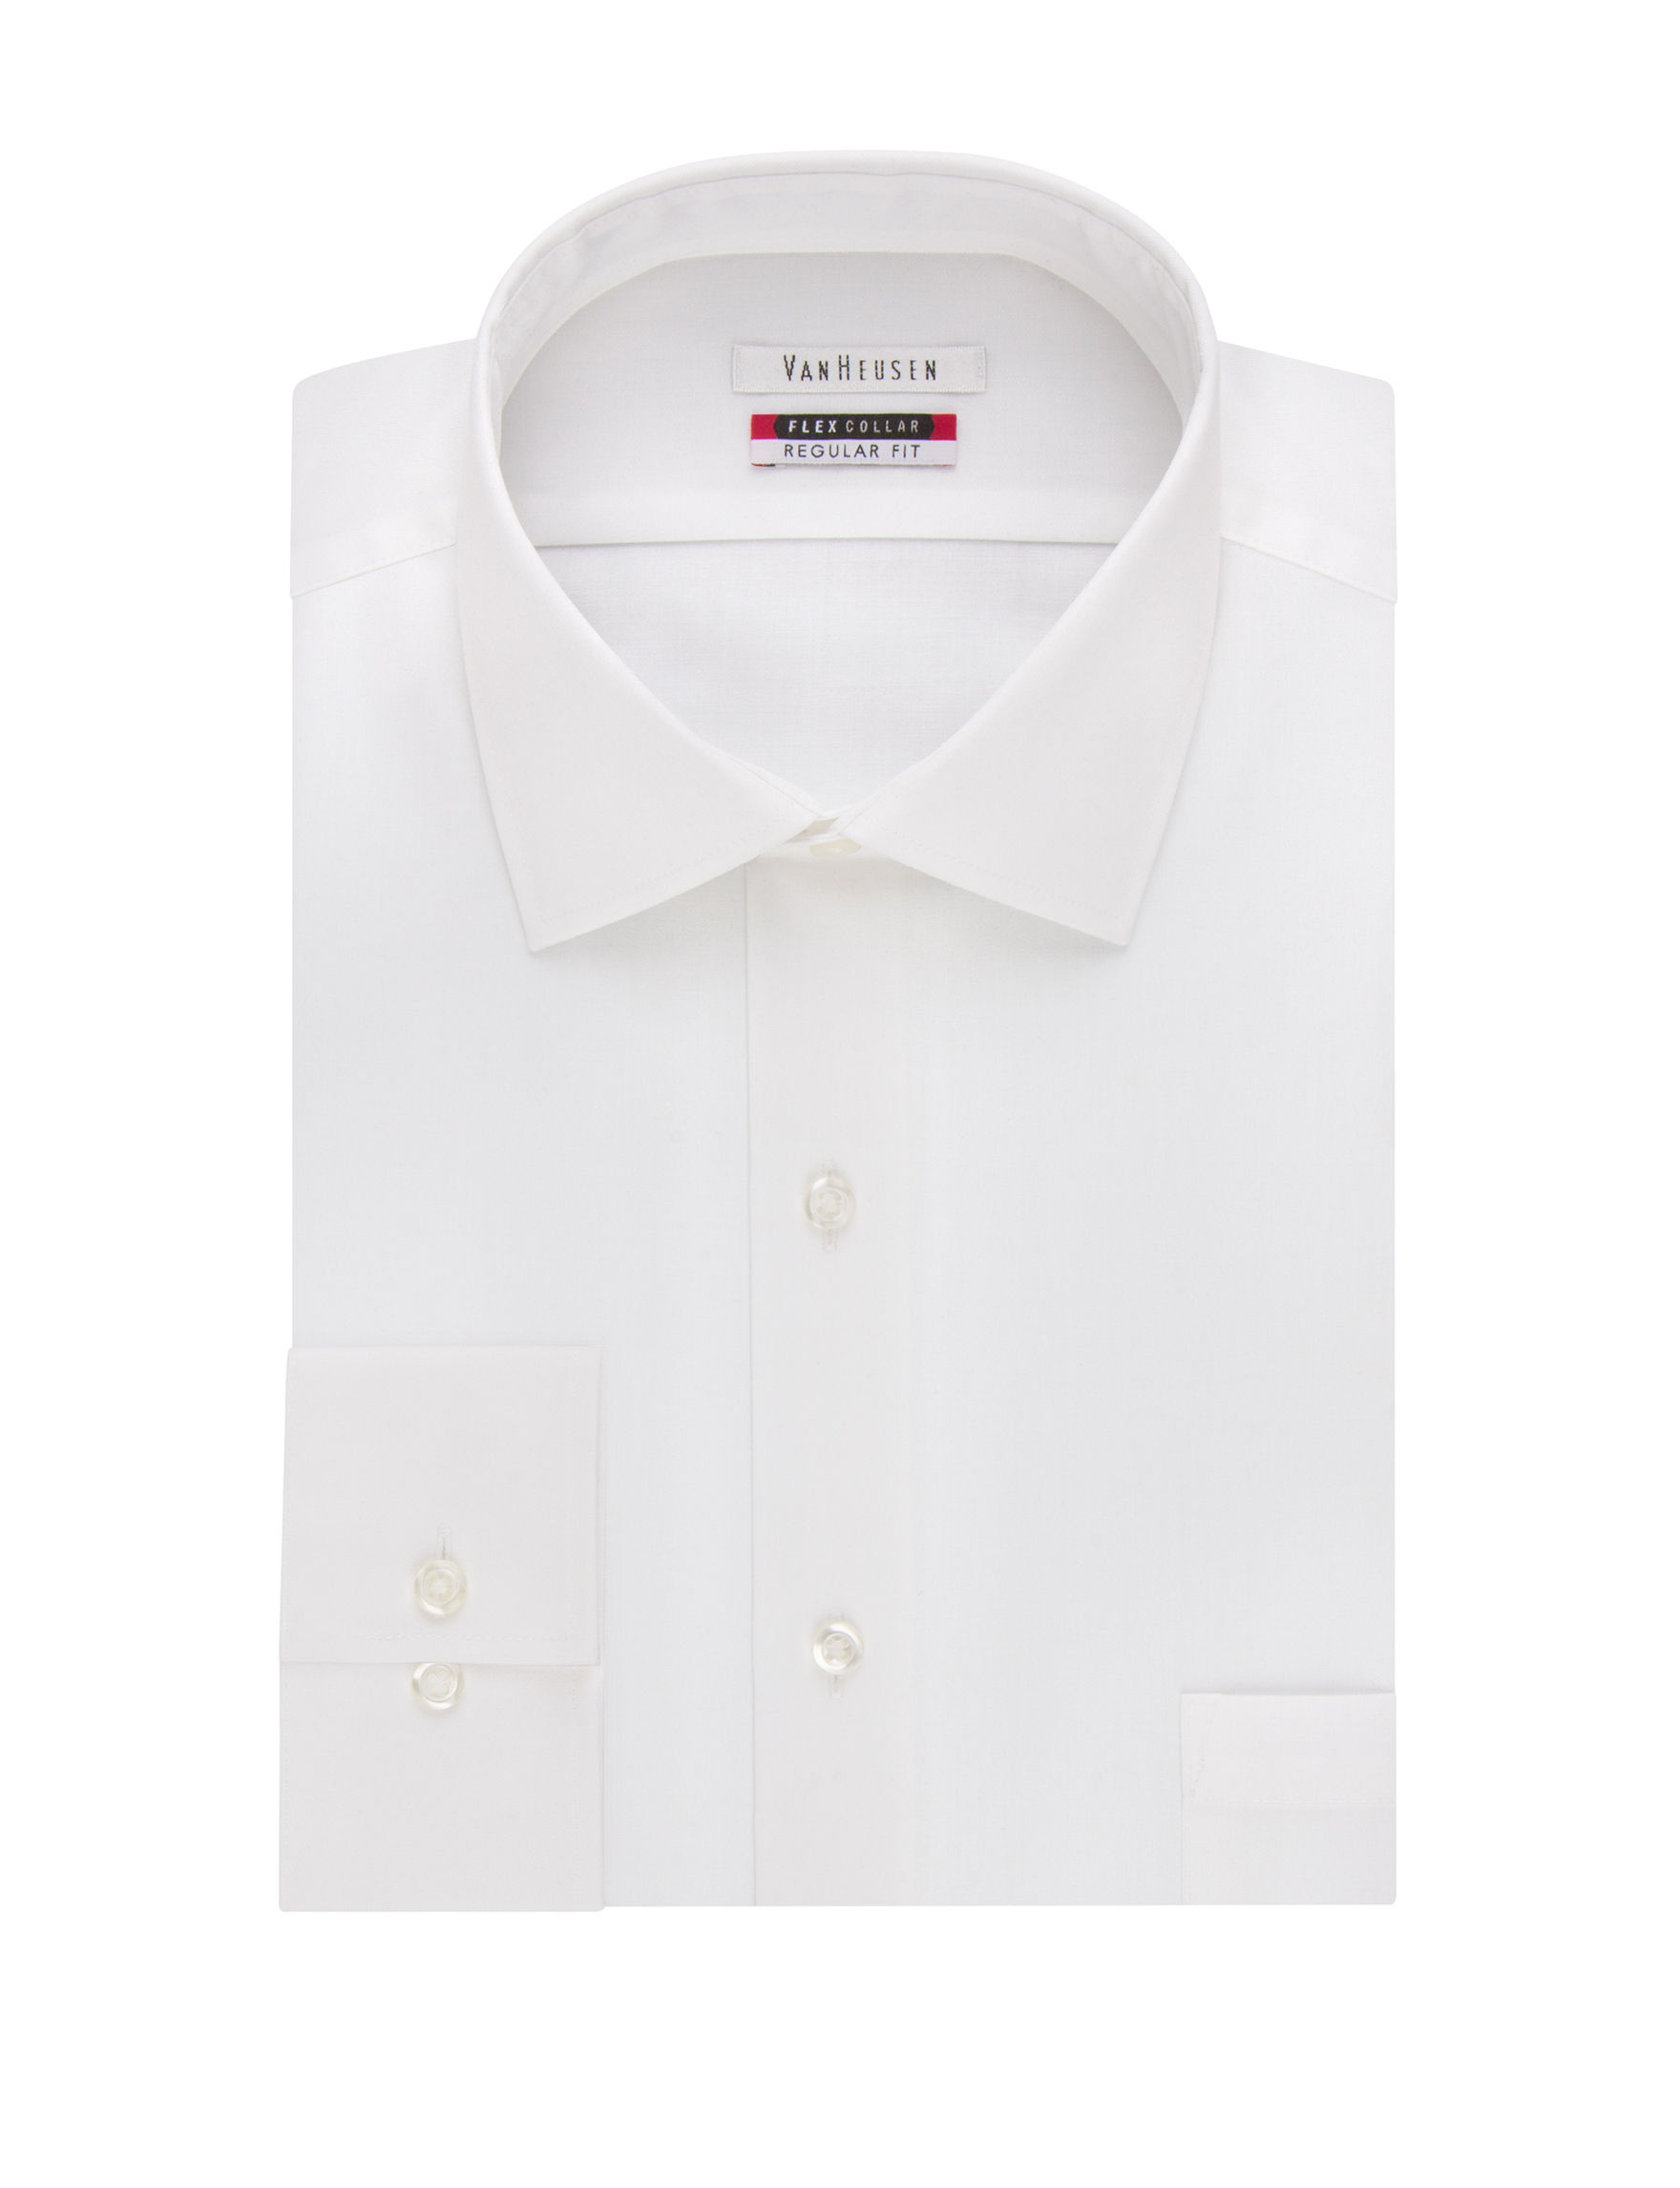 Van Heusen White Dress Shirts